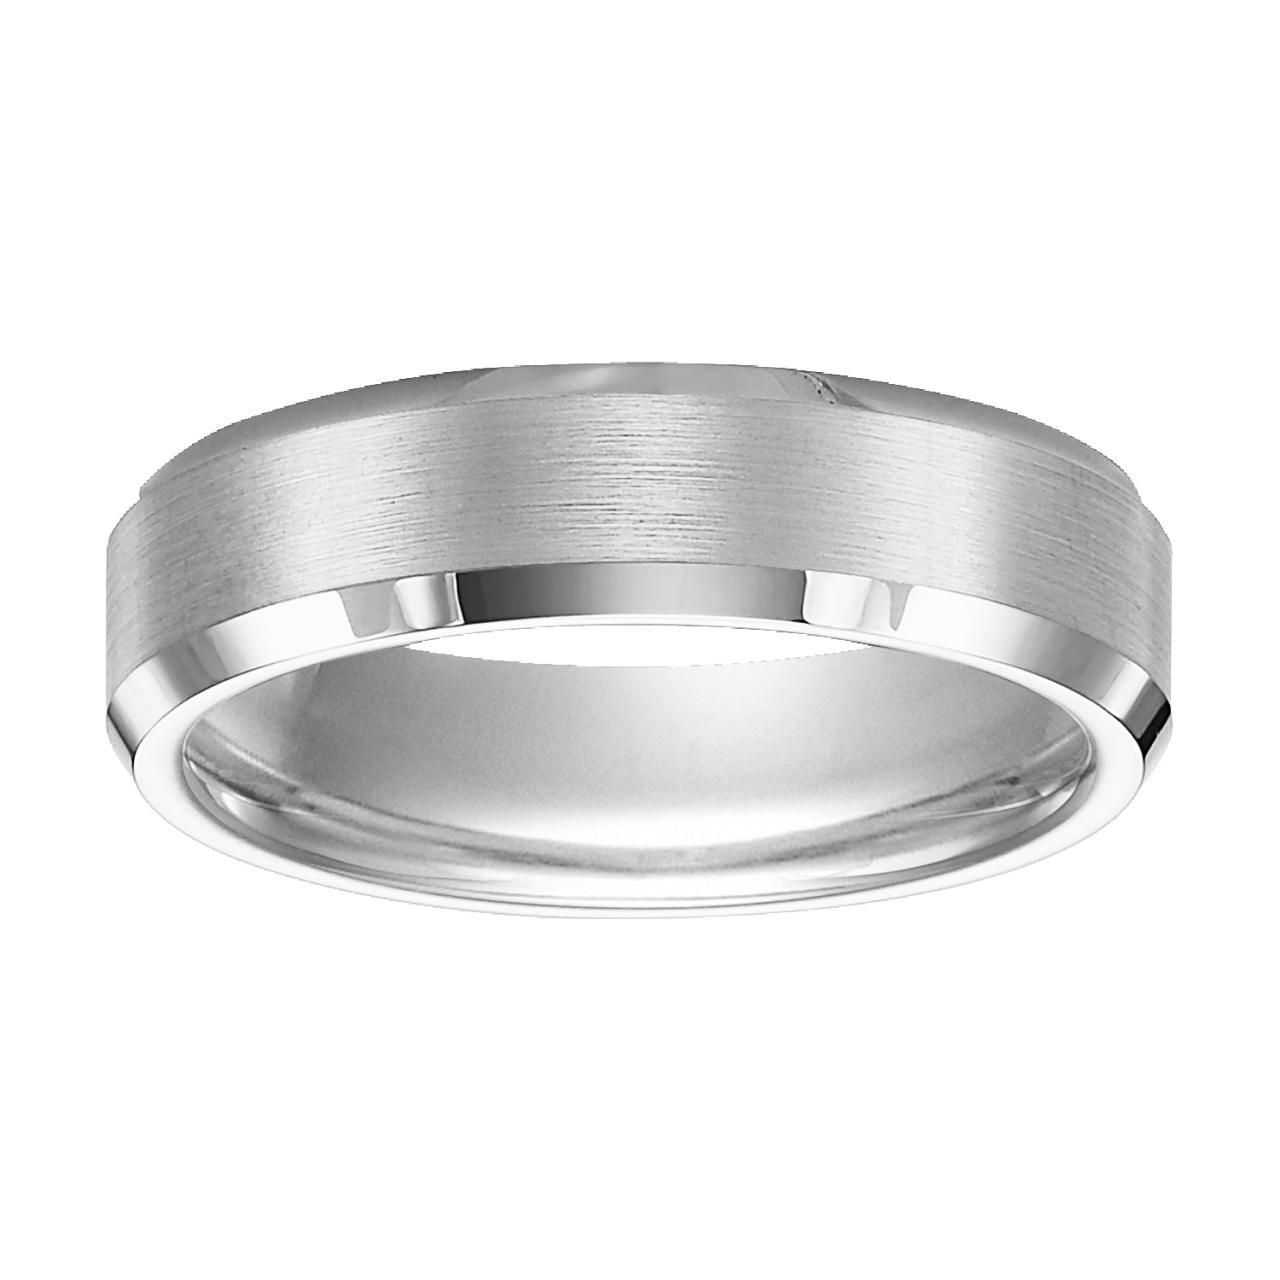 Hoppe Jewelers - WTC 6MM SATIN CTR BEVELED EDGE CF WED BAND, $240.0 (http://www.hoppejewelers.com/wtc-6mm-satin-ctr-beveled-edge-cf-wed-band/)